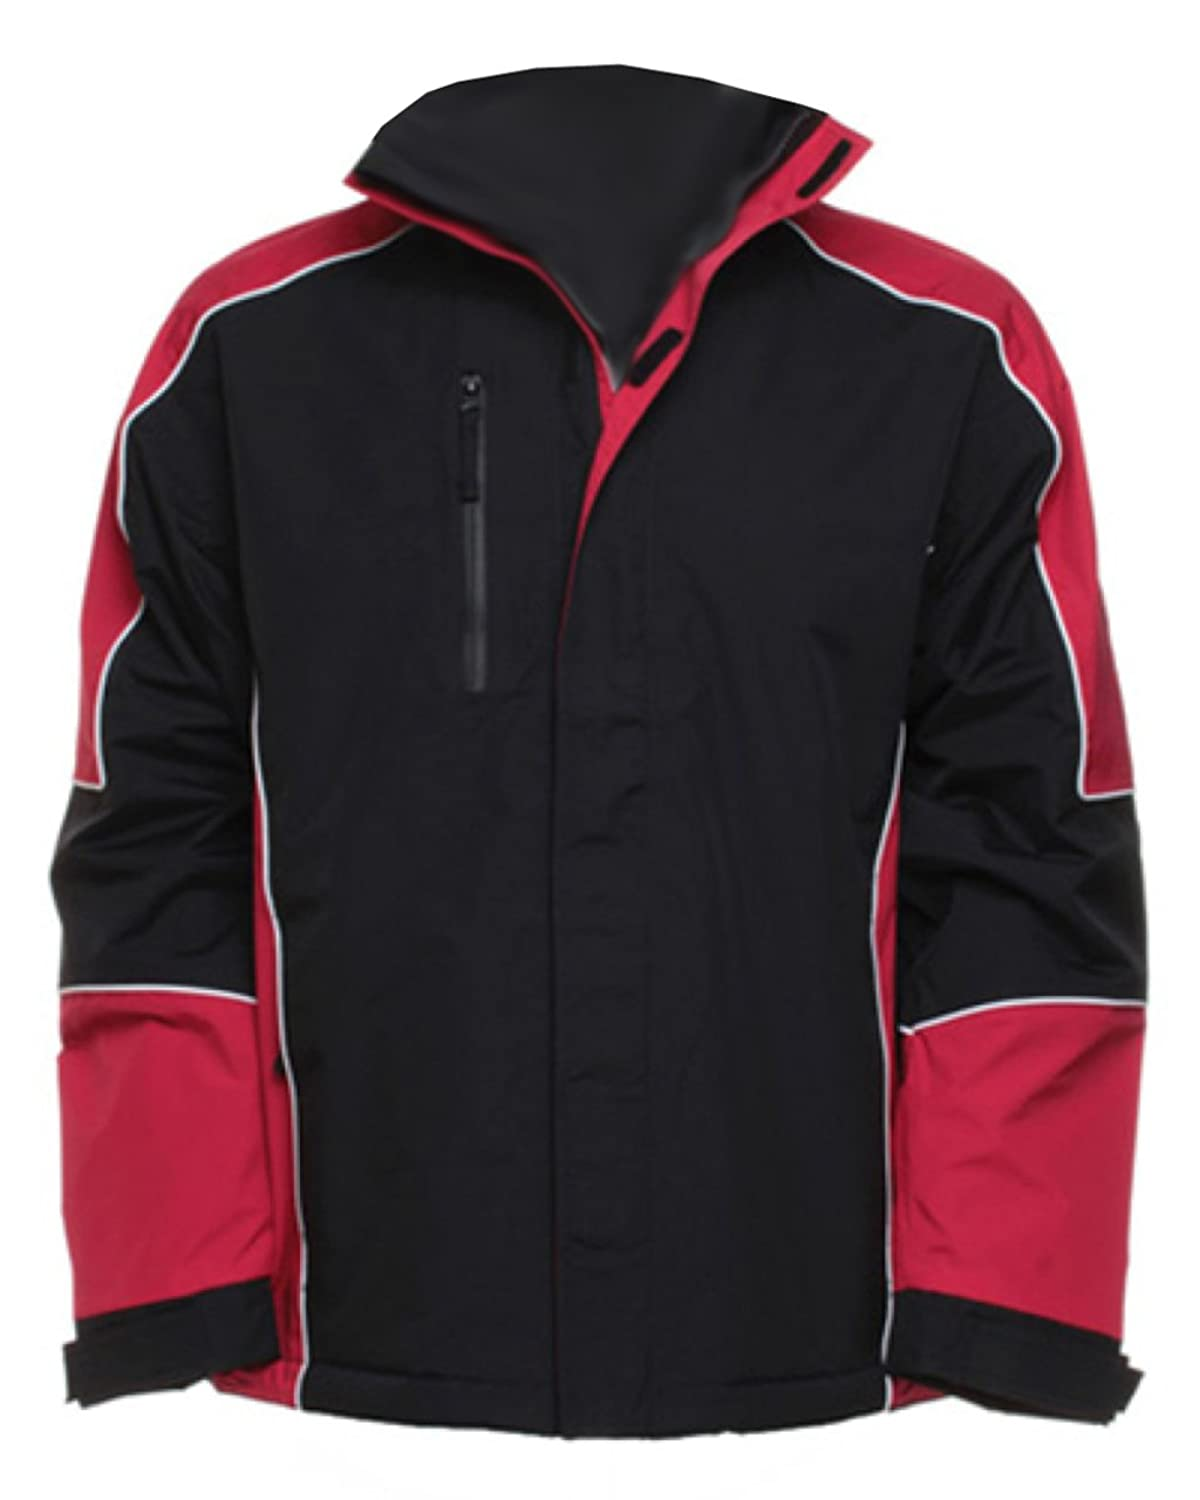 Formula Racing Monza Jacket Black/red/white L